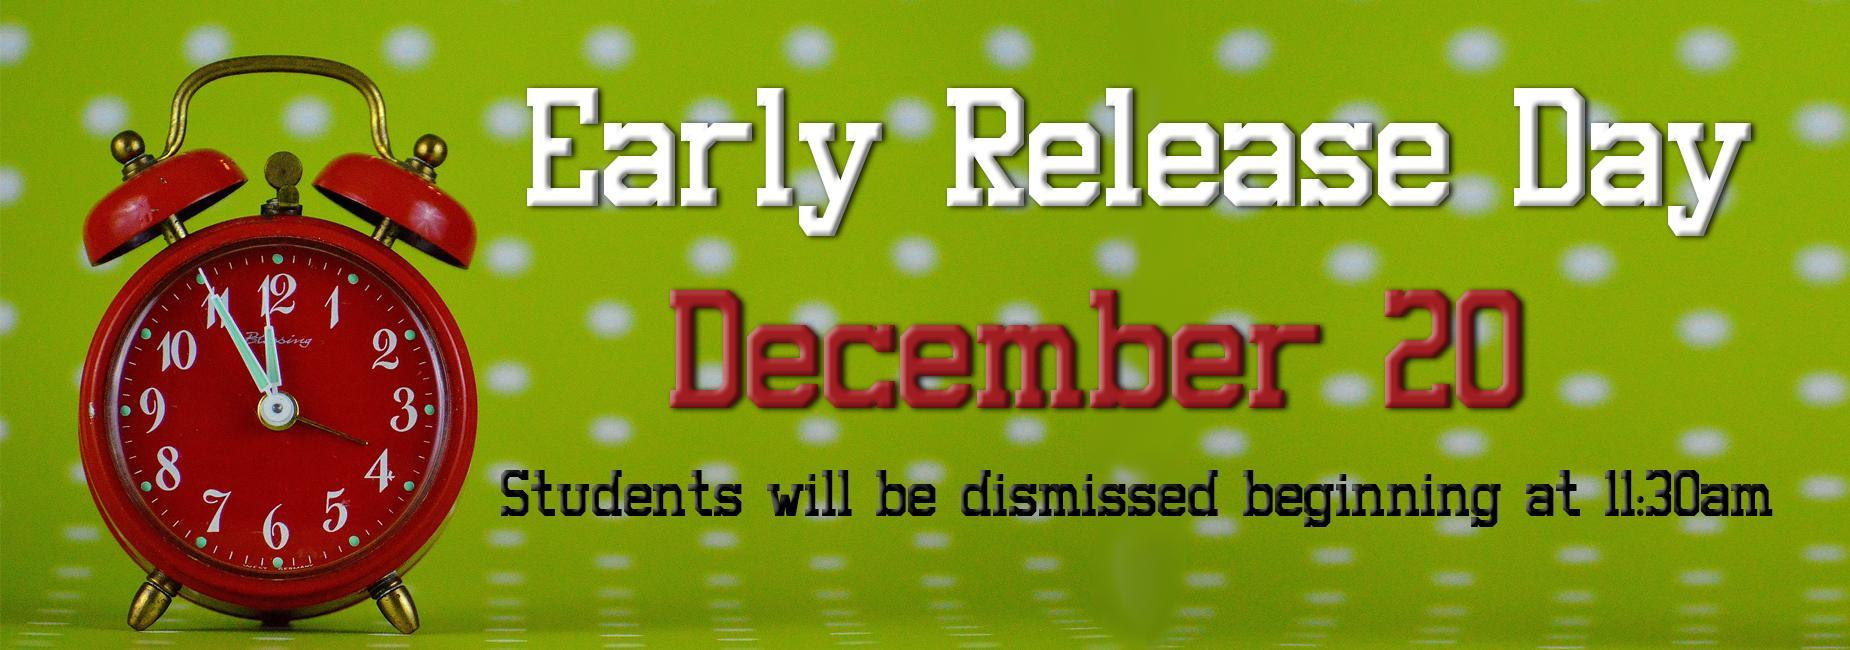 Early Release Day December 20th. Students dismiss at 11:30am